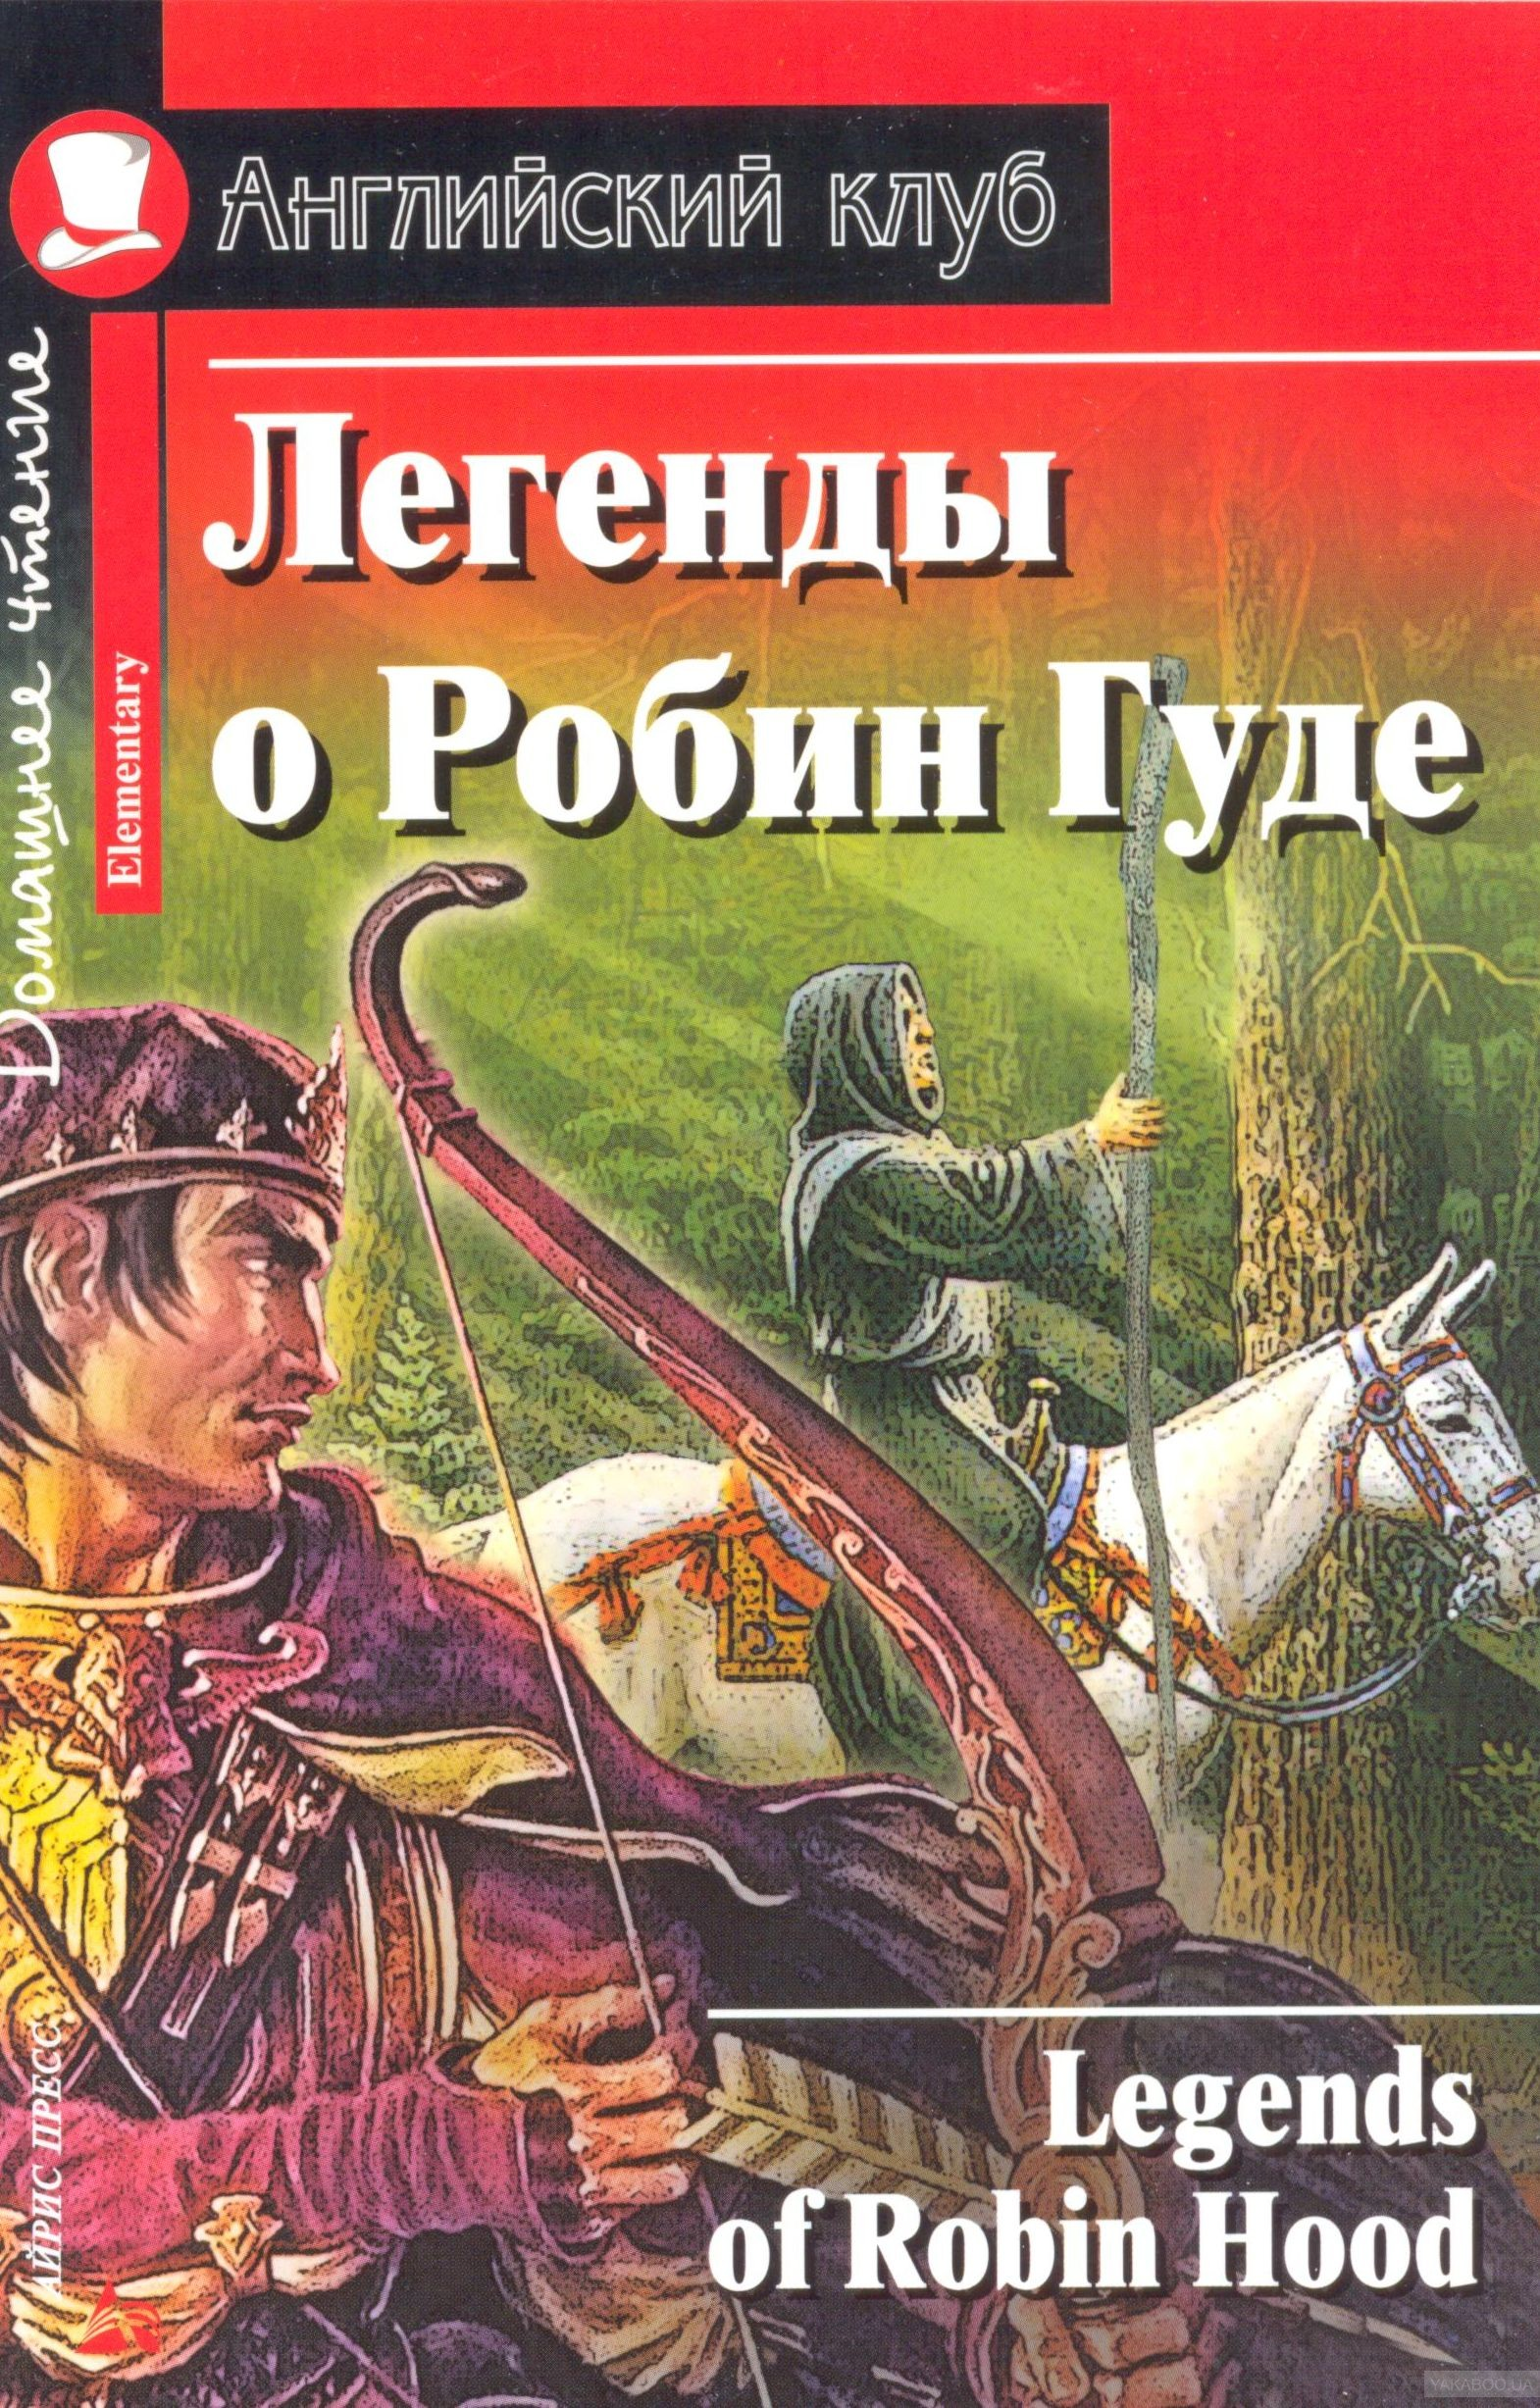 Легенды о робин гуде / legends of robin